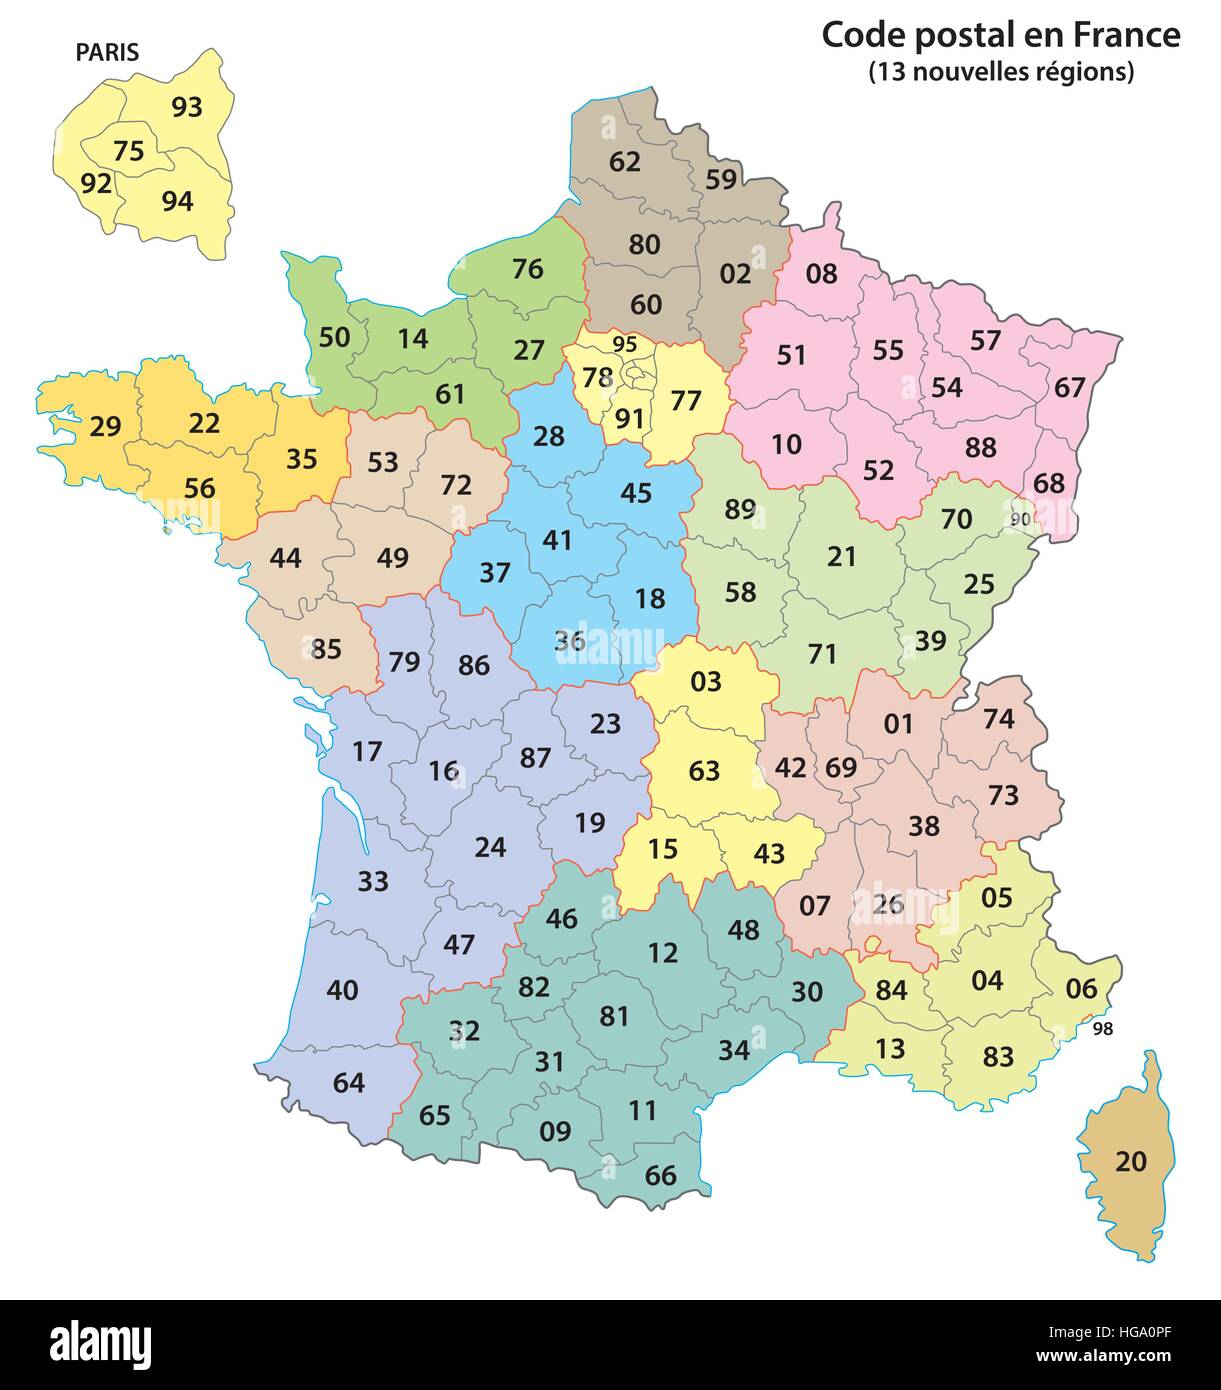 France Map Stock Photos & France Map Stock Images - Alamy